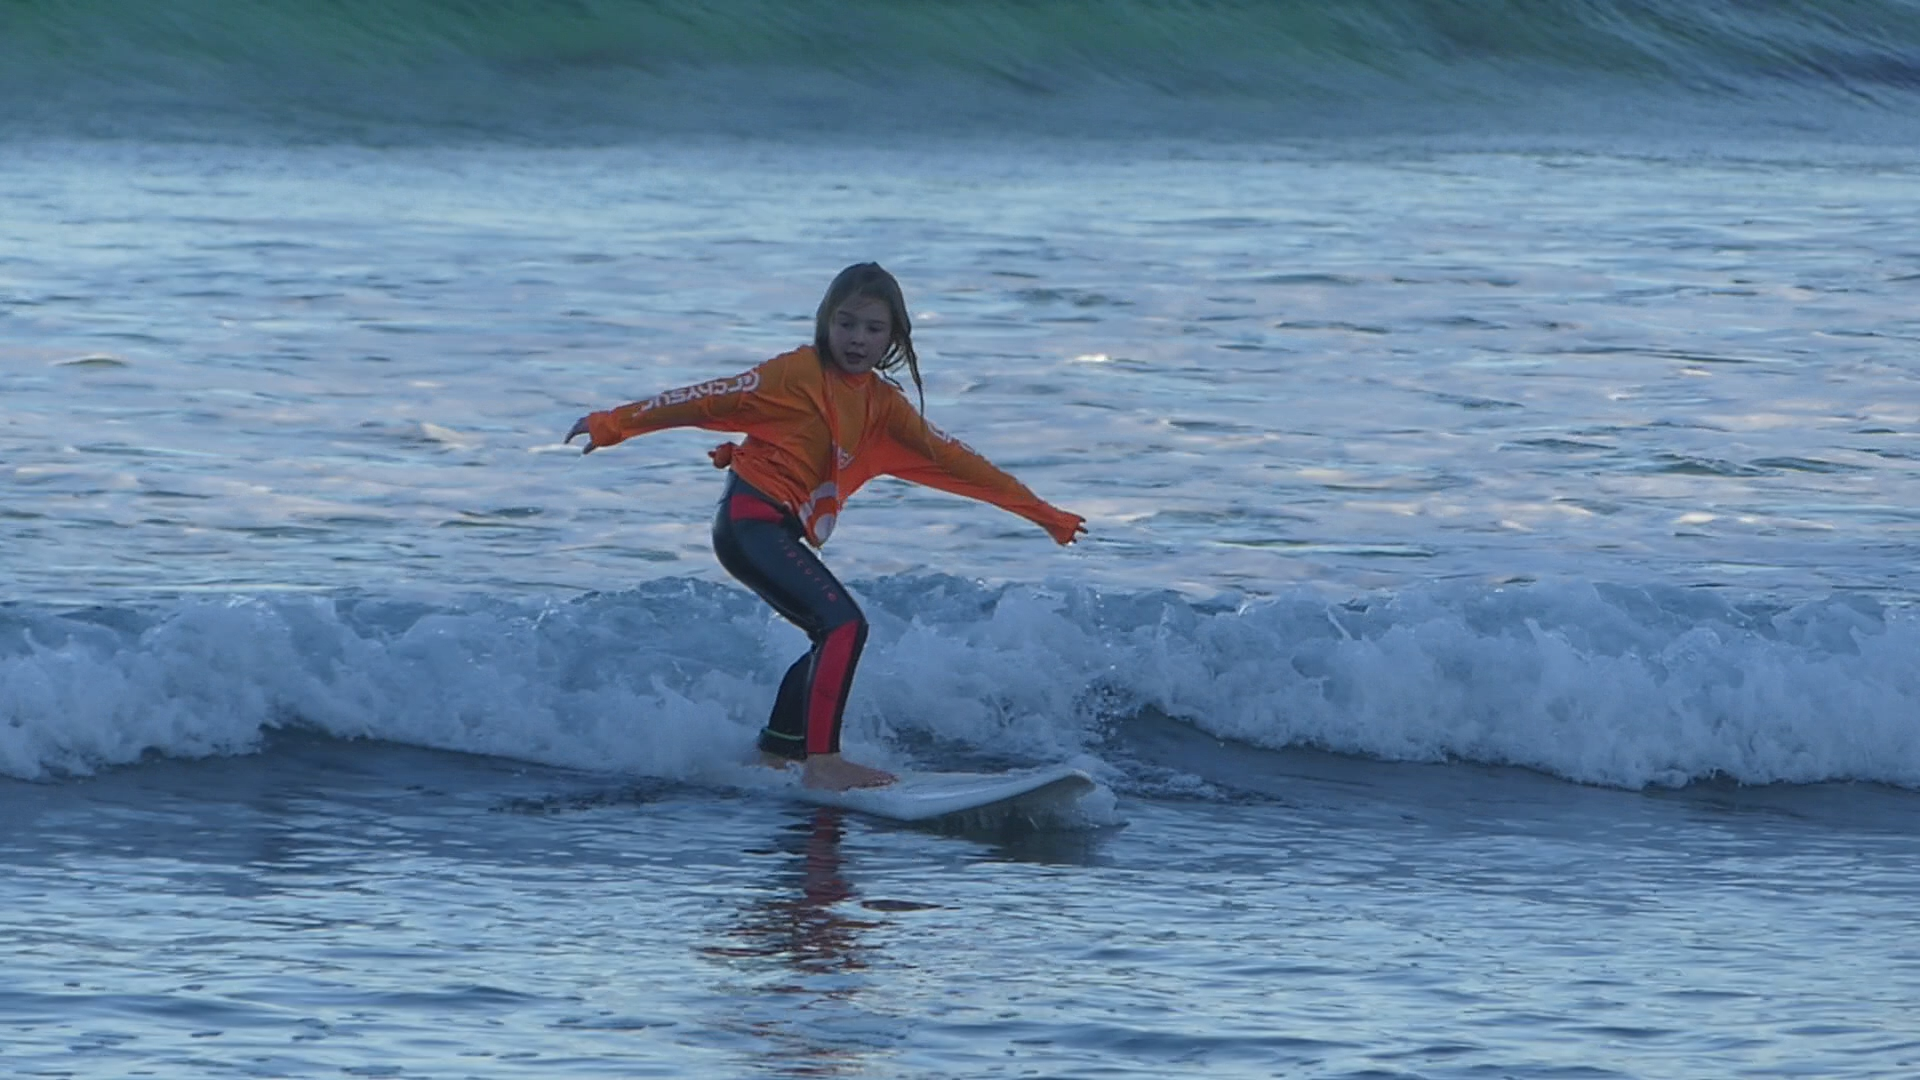 AGES 5 to 12  STAGE 1 FOUNDATIONS: LEARN CORRECT SURFING TECHNIQUE: GAIN KNOWLEDGE AND UNDERSTANDING OF THE WAVES/OCEAN, WIND,EQUIPMENT AND BASIC SURF FITNESS TO BUILD A STRONG BASE.  INCLUDES ALL EQUIPMENT COACHING & VIDEO